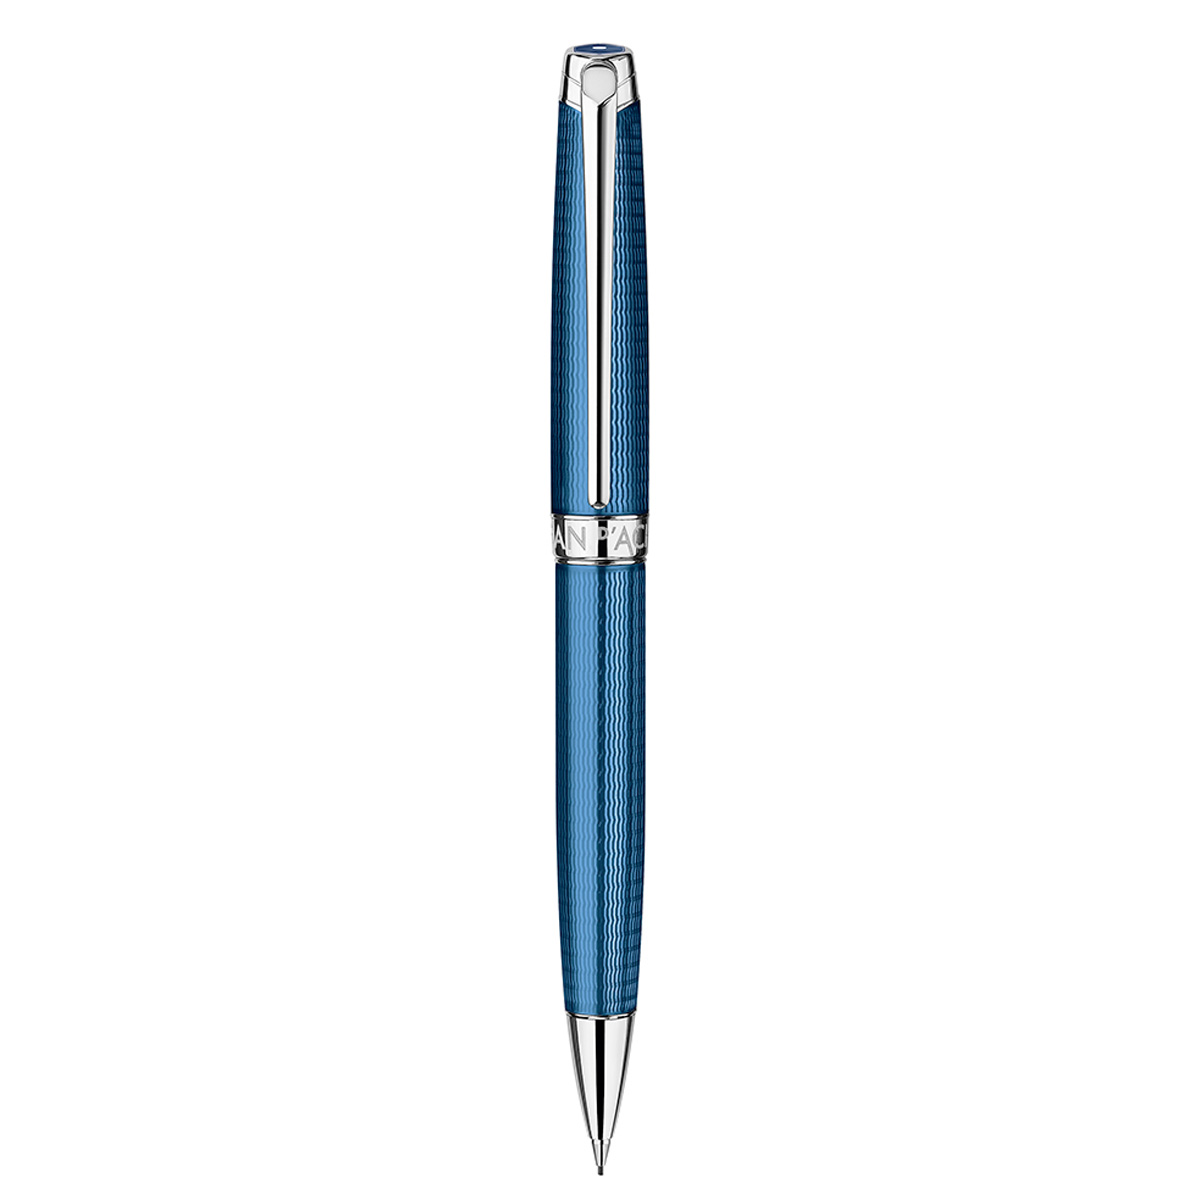 Caran d'Ache Leman Grand Bleu Mechanical Pencil